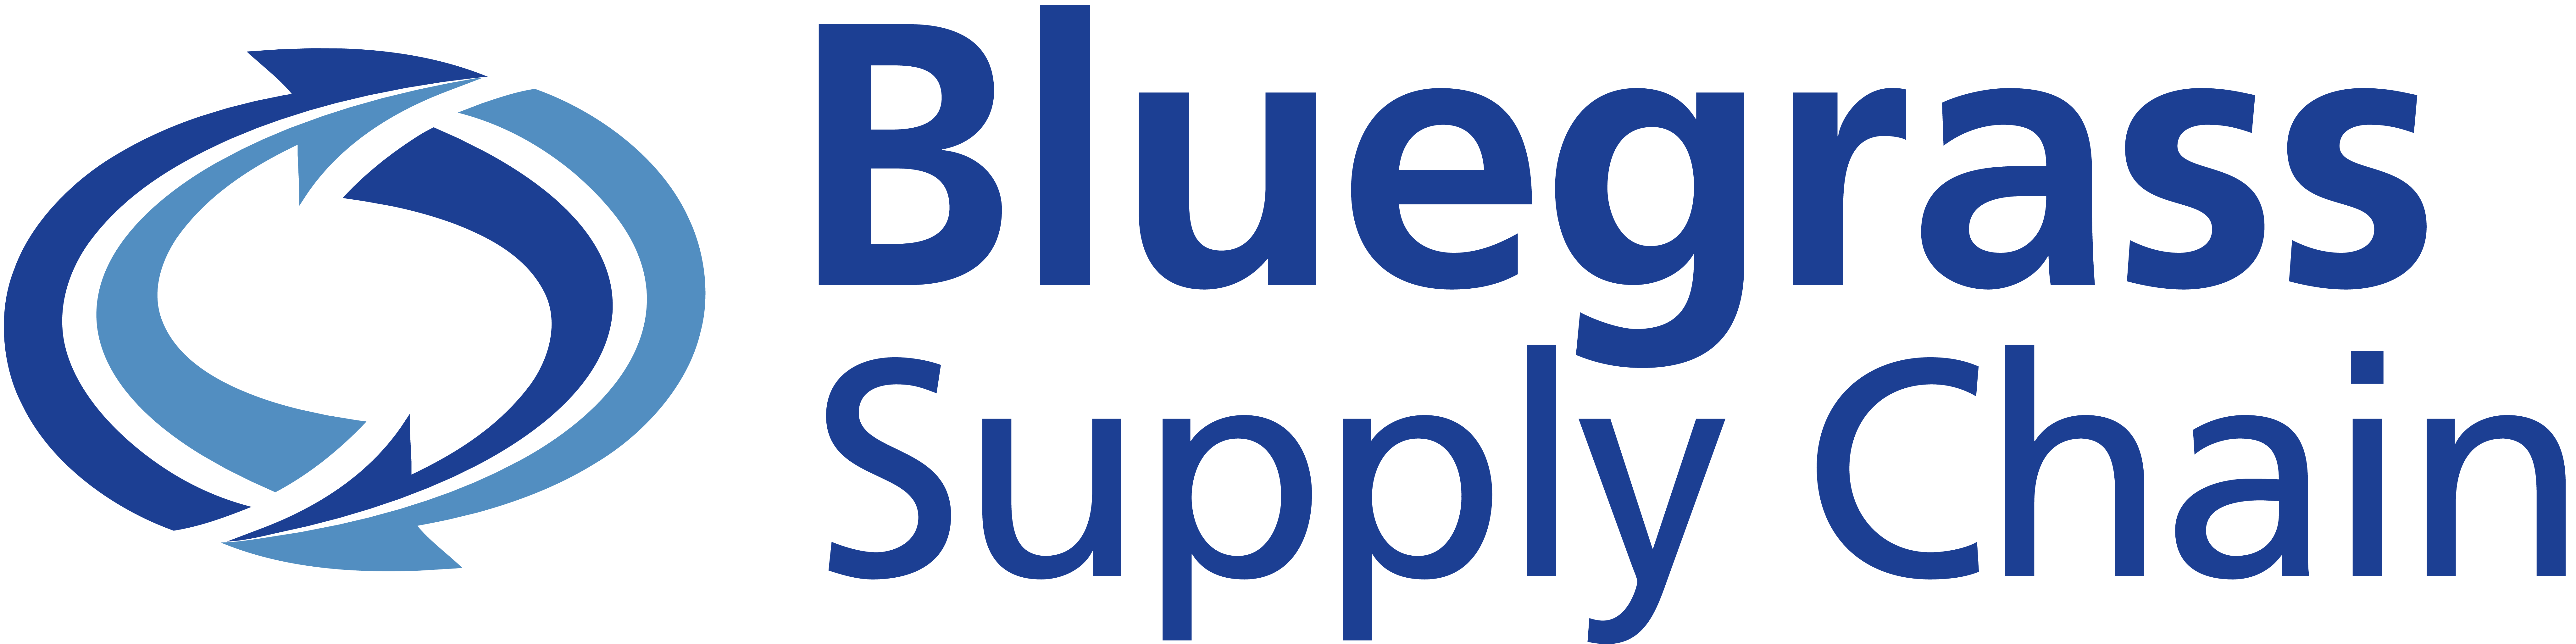 Bluegrass Supply Chain Services